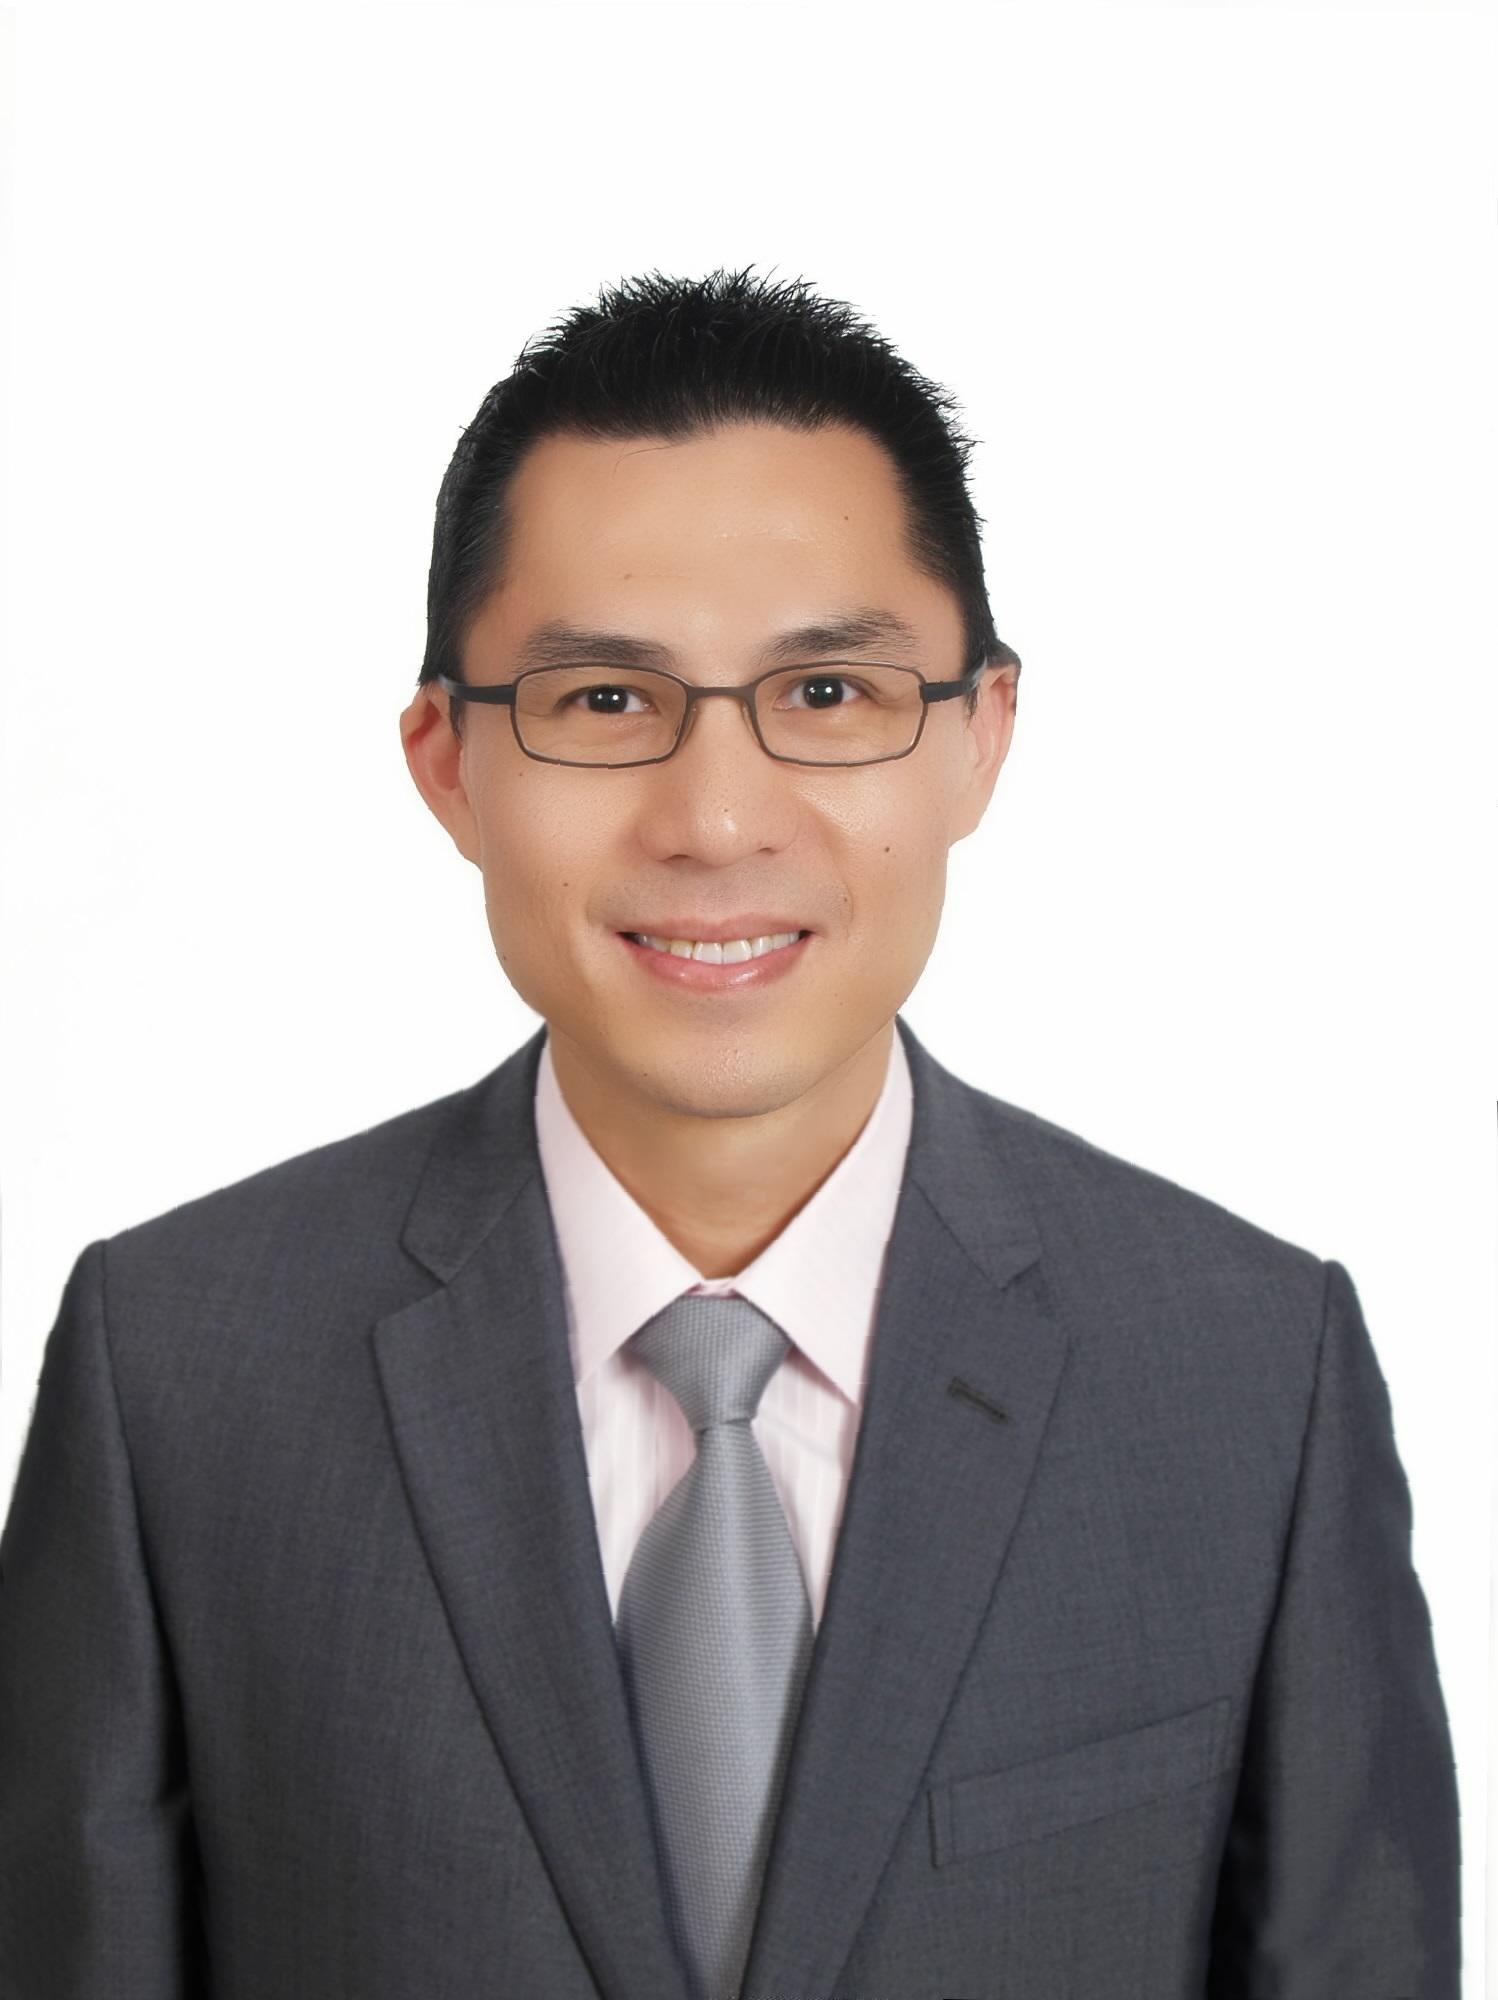 Photo of Carrson C. Fung